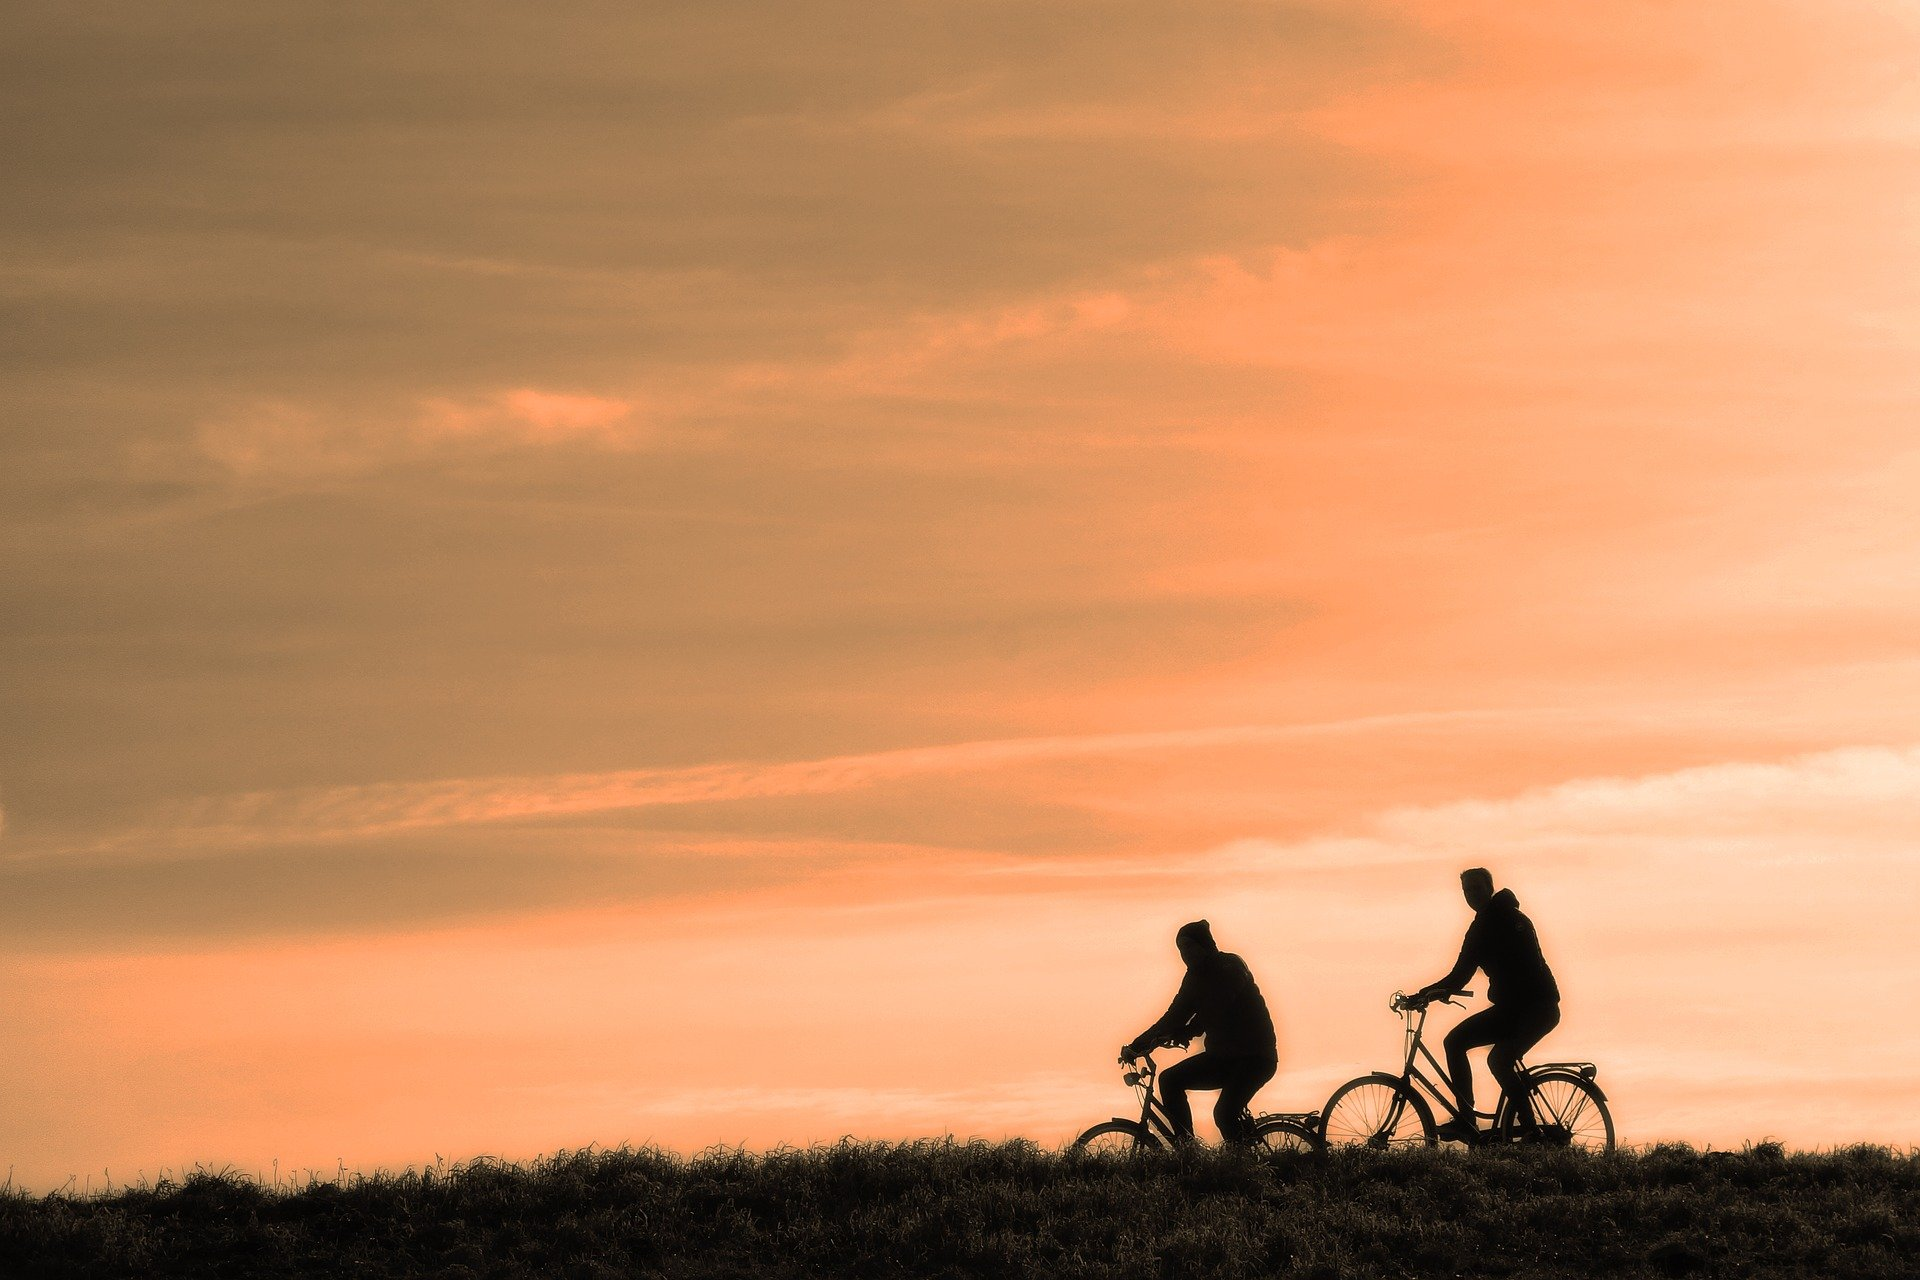 5 Healthy Things To Do On Canada Day Bike Riding